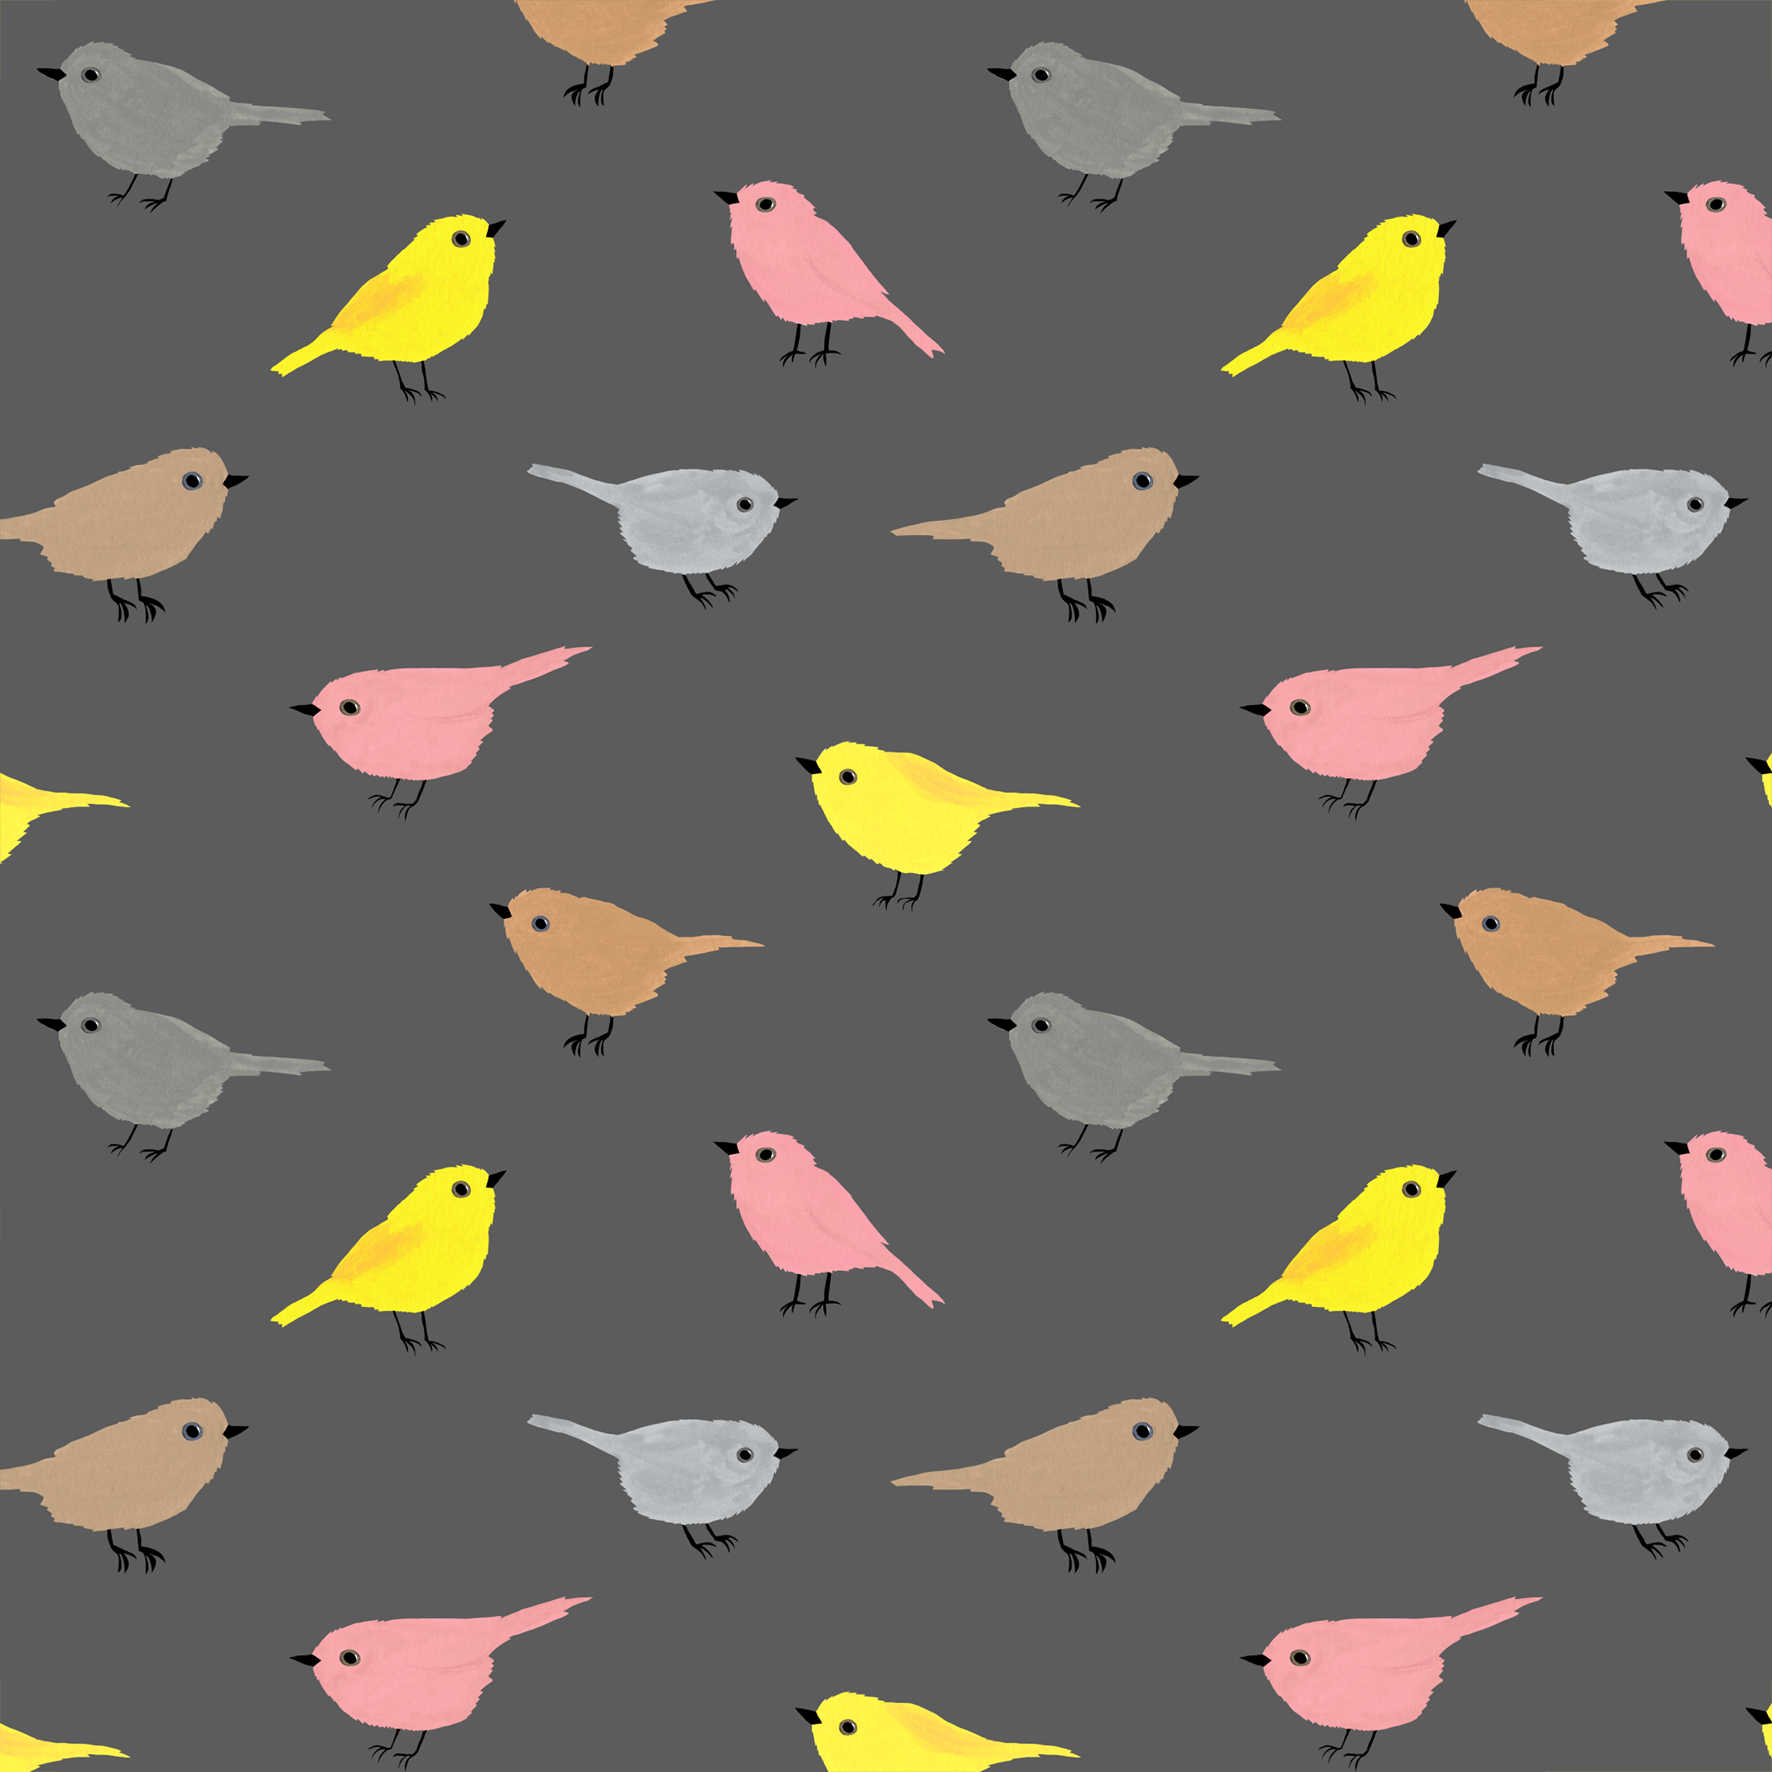 melissa boardman cute birds pattern on grey.png